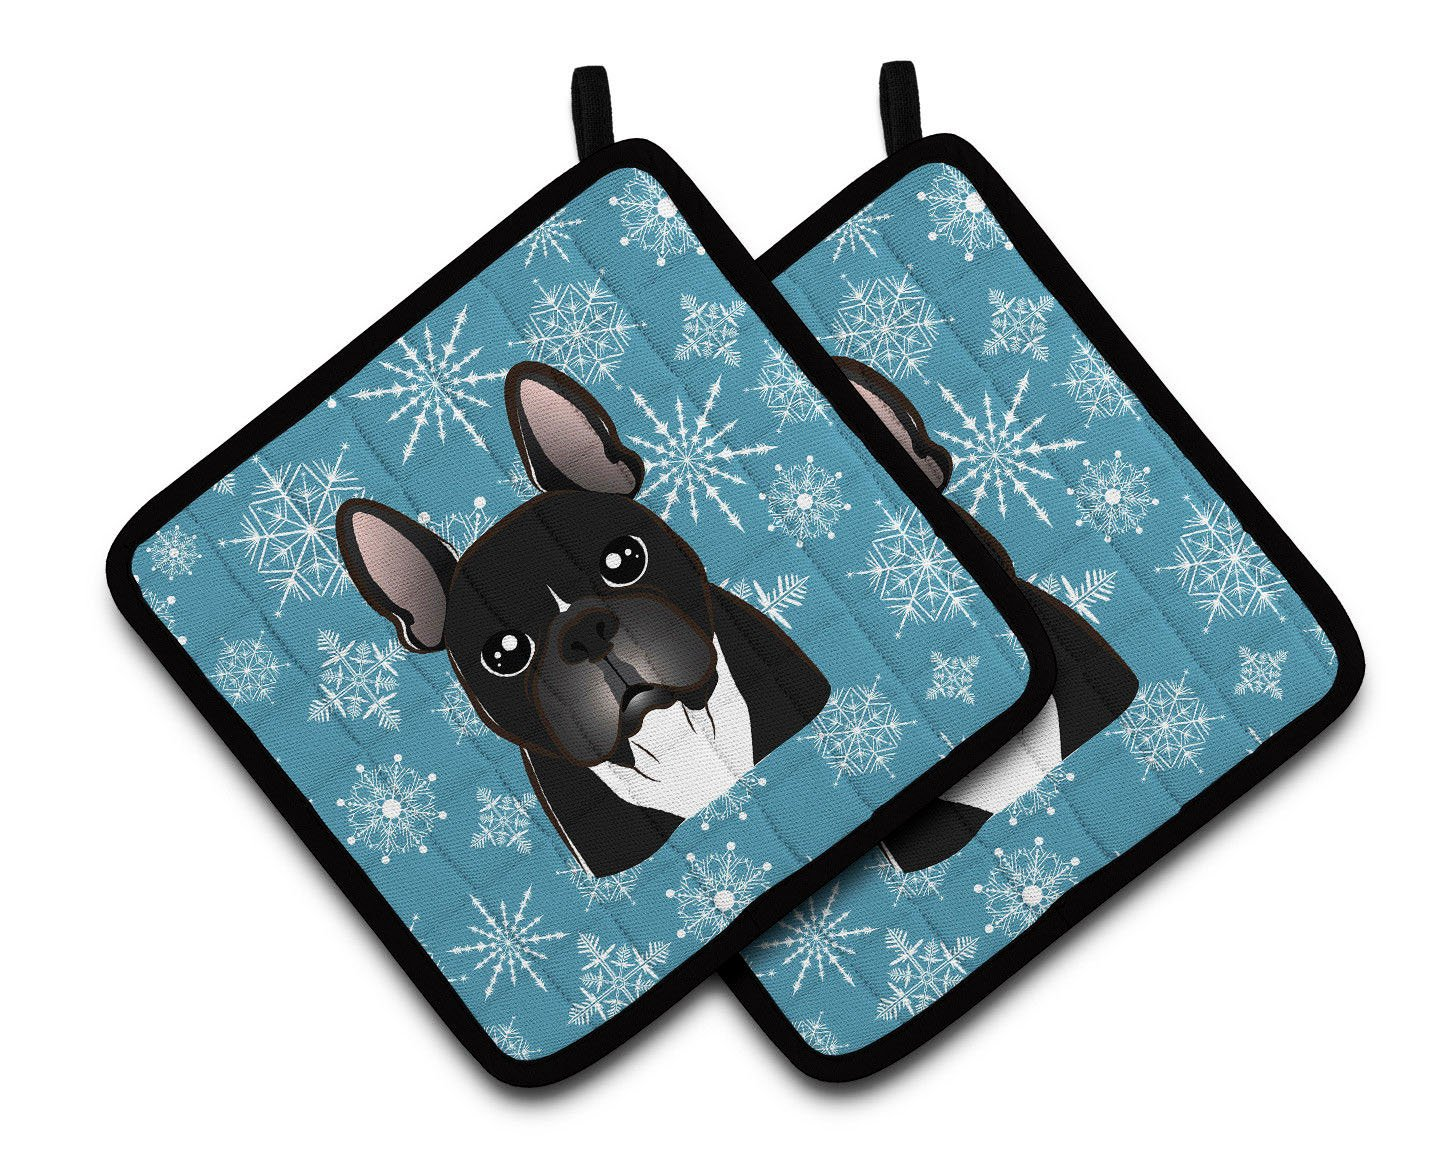 """Custom & Durable {7.5"""" X 7.5'' Inch Each} 2 Set Pack Mid Size """"Non-Slip"""" Pot Holders Made of Cotton for Carrying Hot Dishes w/ French Bulldog Winter Snowflake Style [White, Blue, & Black] by mySimple Products"""